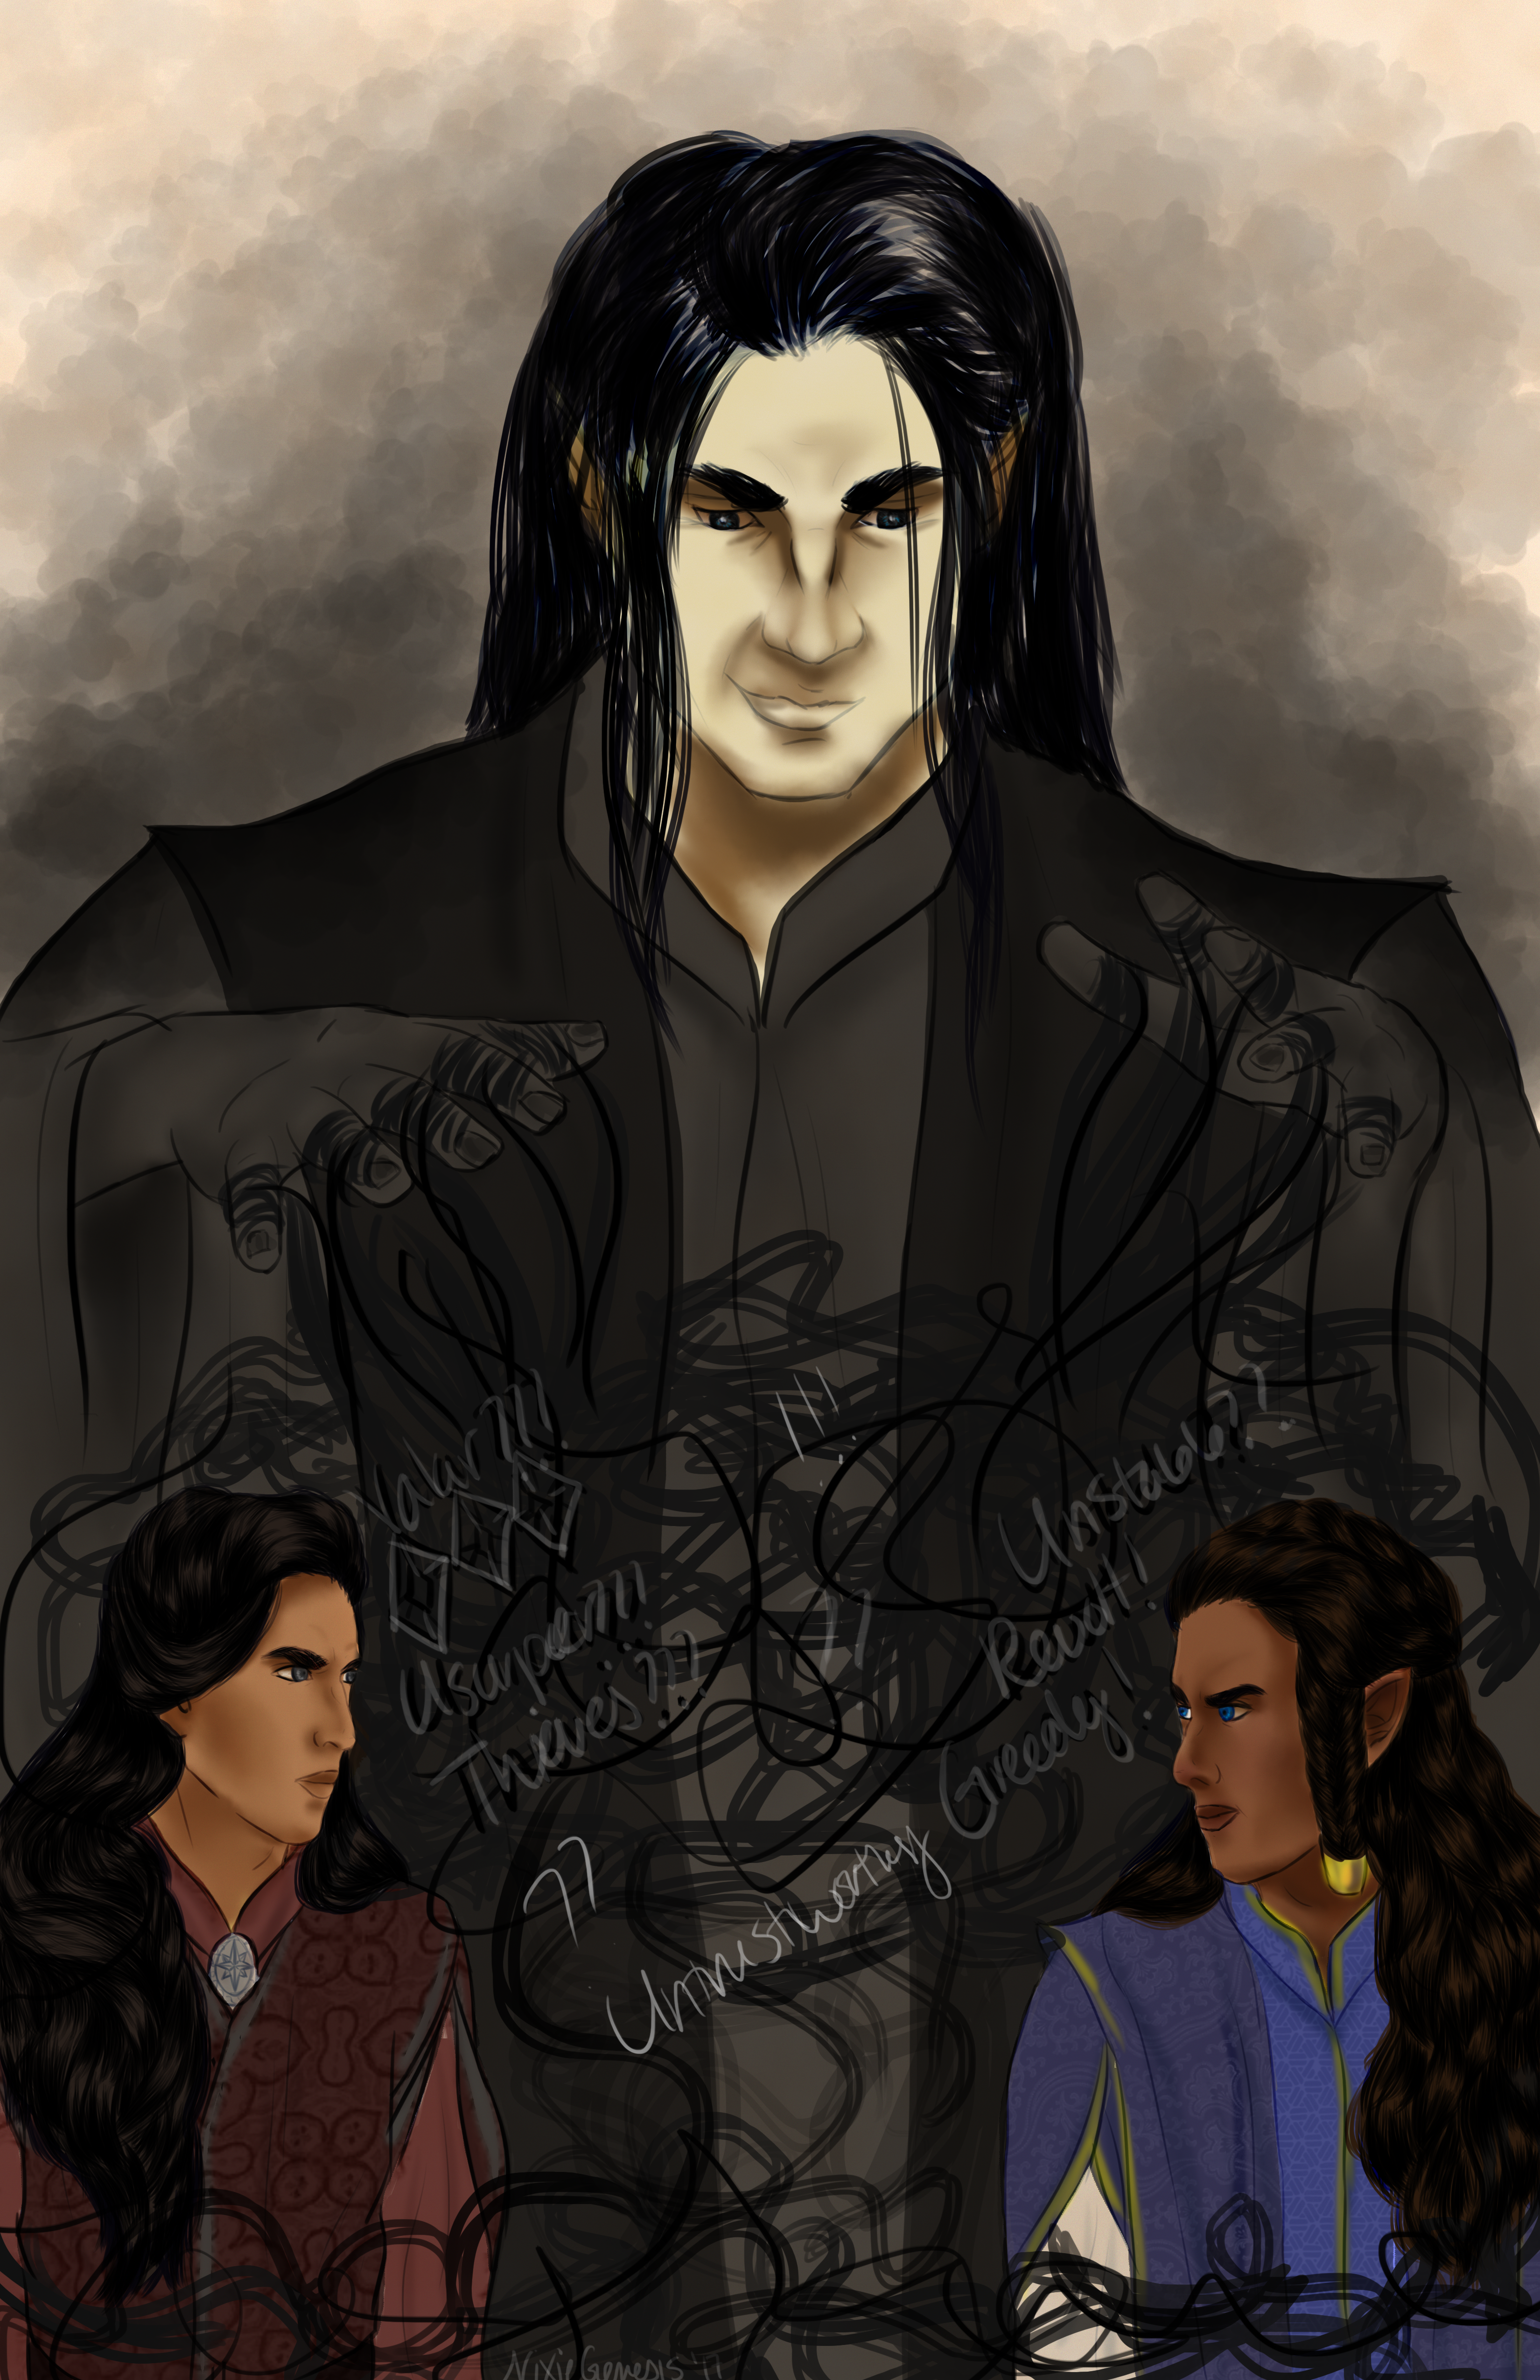 Melkor stirs strife among the Noldor, artwork by Nixie Genesis